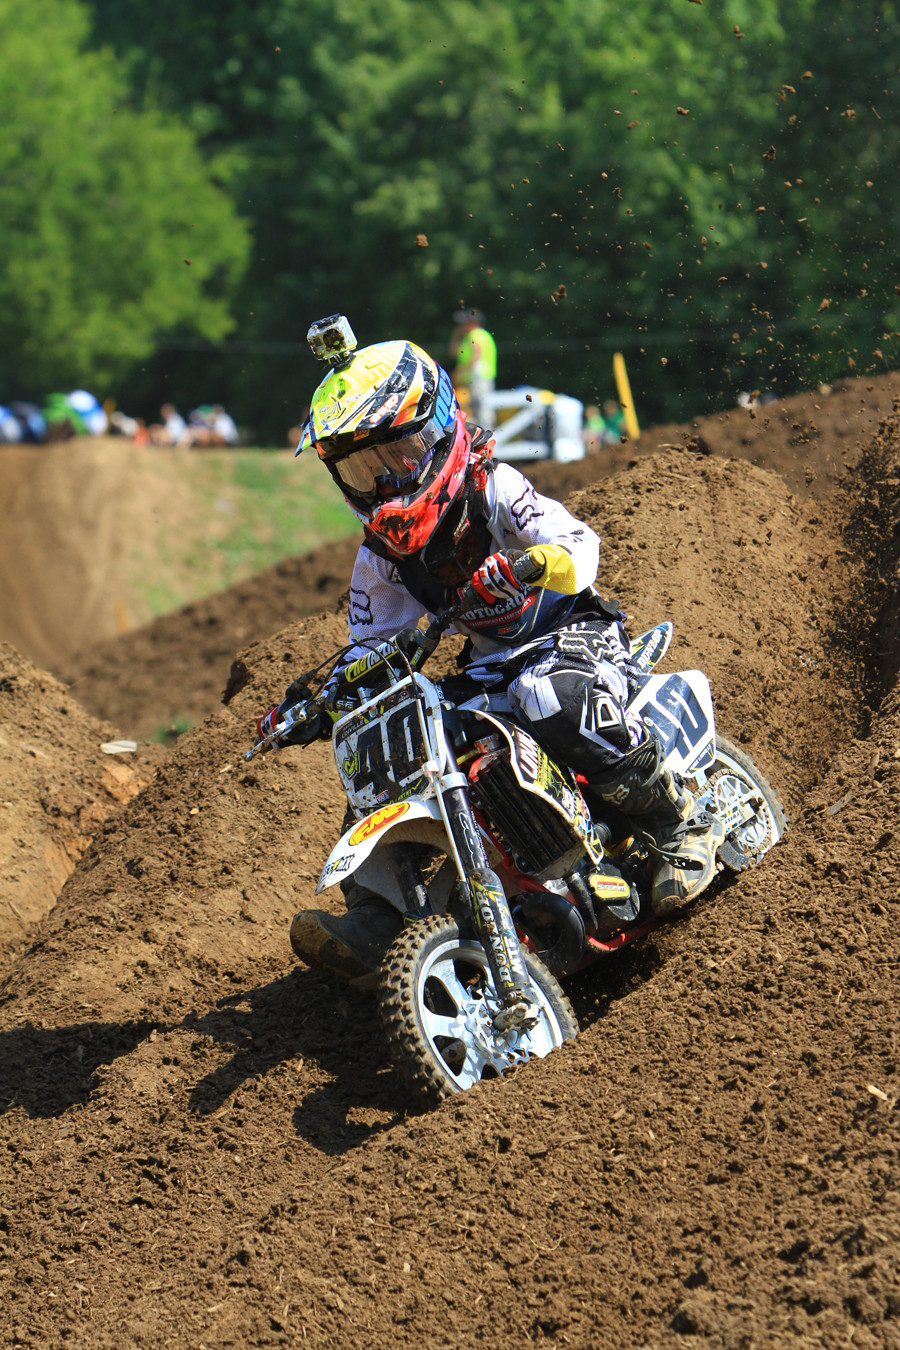 Gage Linville - Day 3: 2012 Red Bull AMA Amateur National Motocross Championships - Motocross Pictures - Vital MX